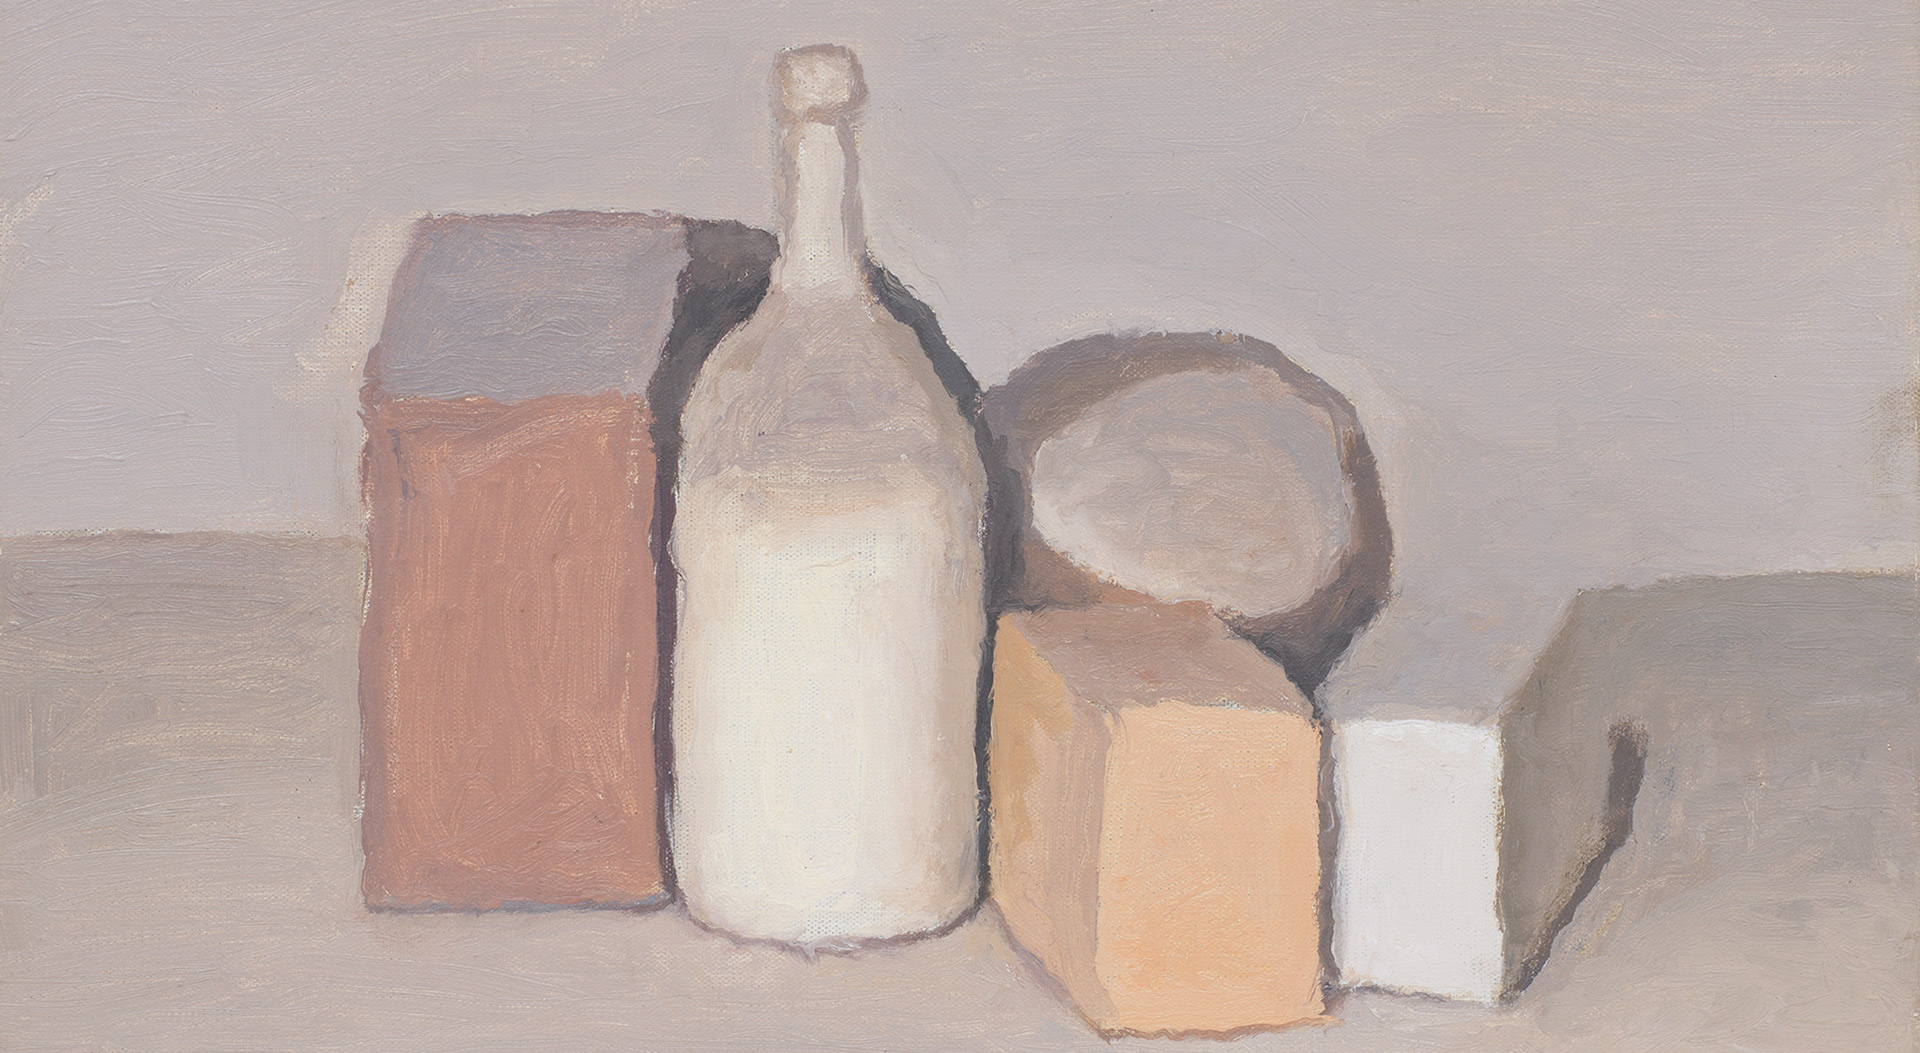 A detail from a painting by Giorgio Morandi, titled Natura morta (Still Life), dated 1955.